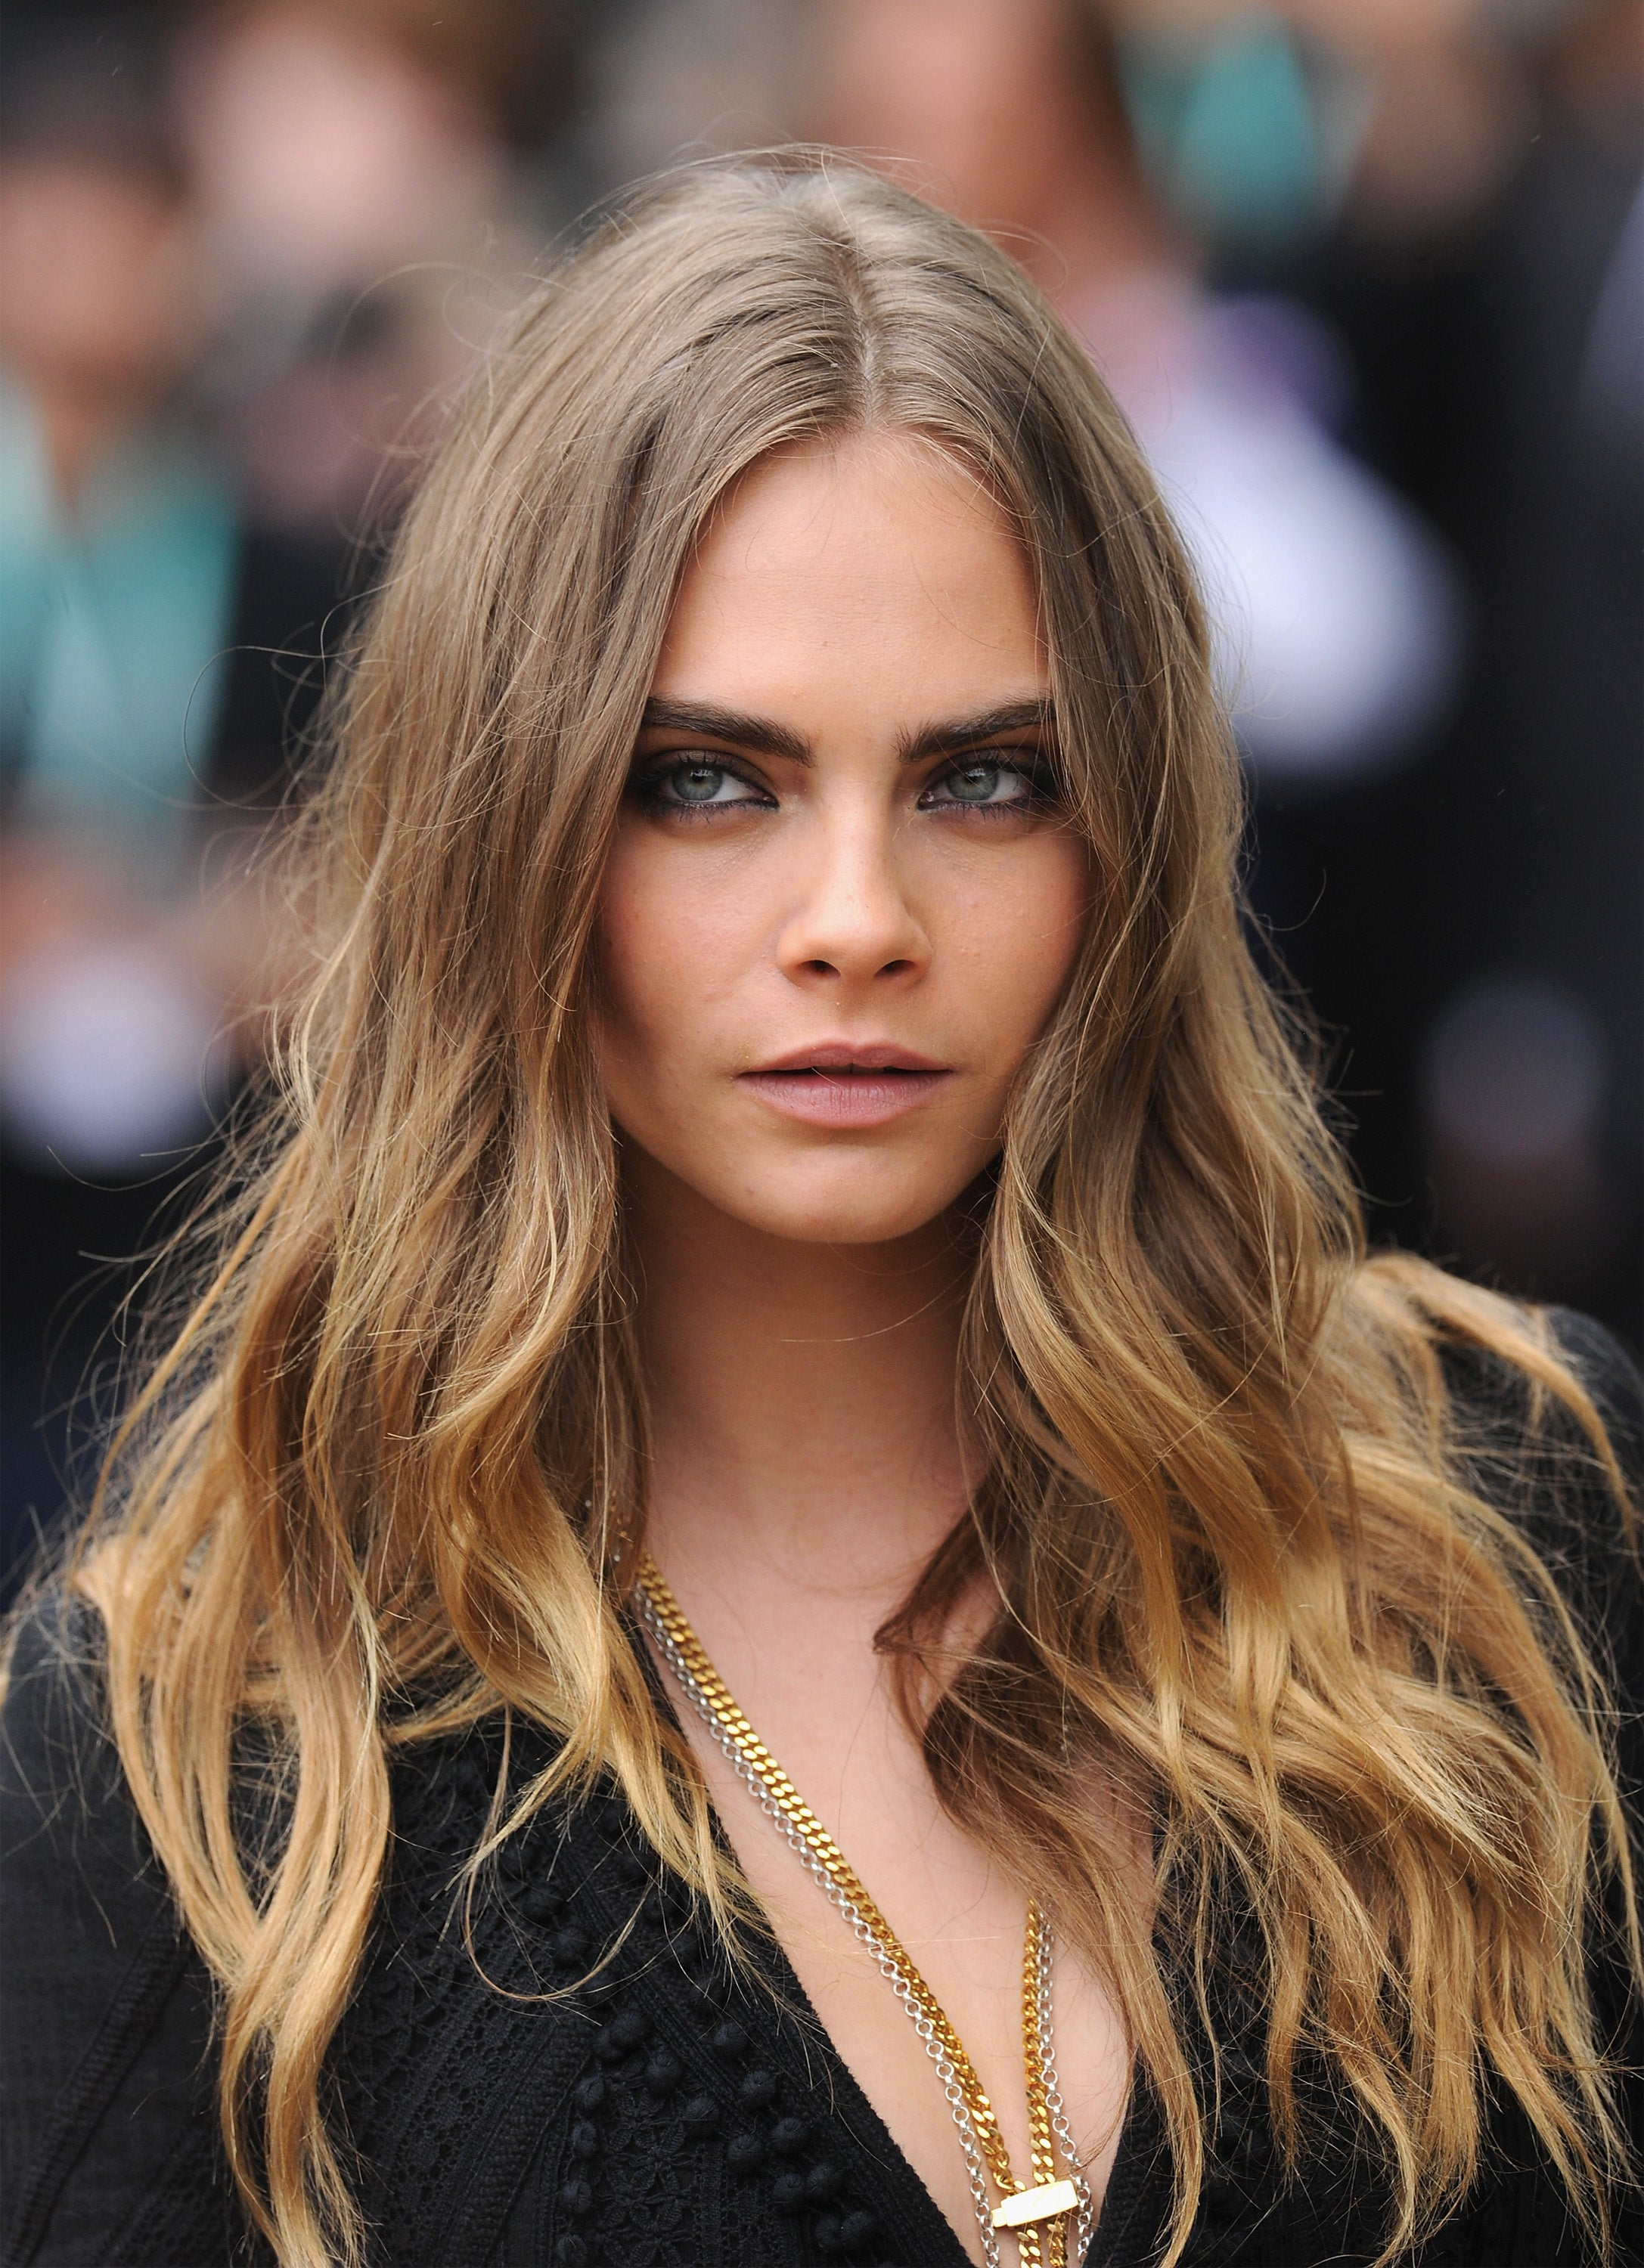 Cara Delevingne, 2015 Autor: Getty Images